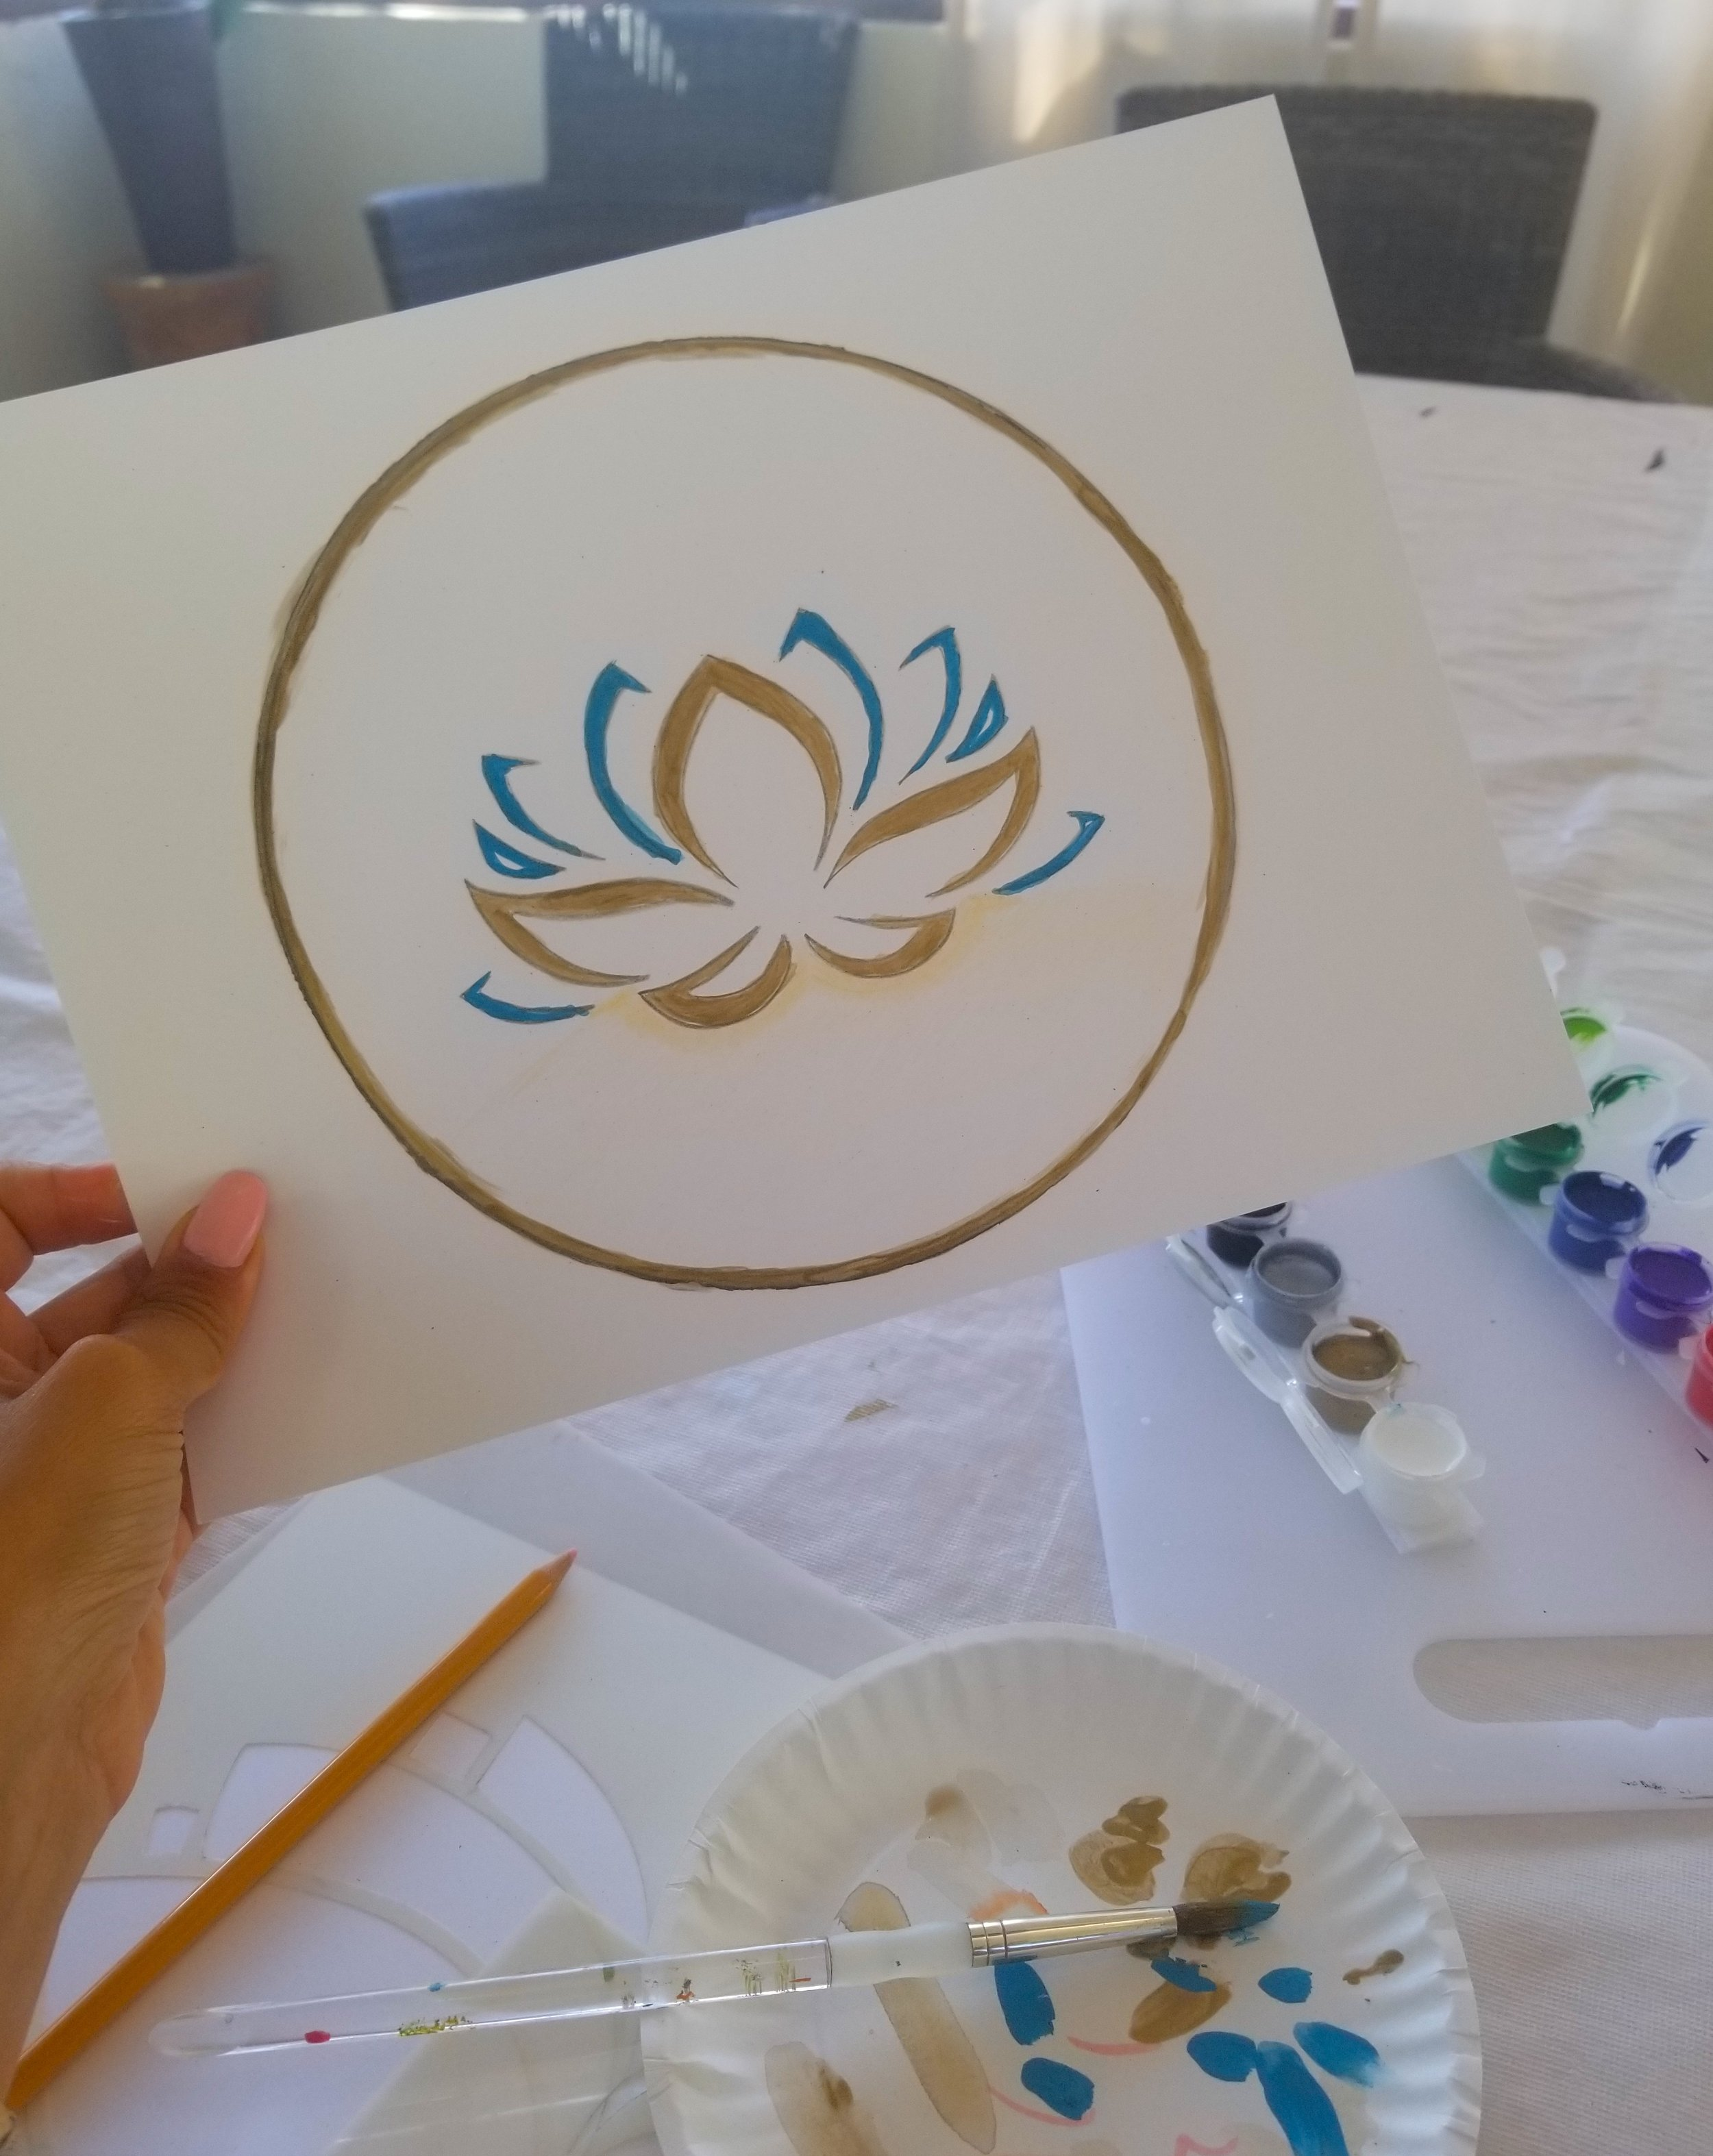 My lotus stencil. The art teacher noticed I used a lot of turquoise and white in both classes which signifies transformation, balance, harmony and tranquility!